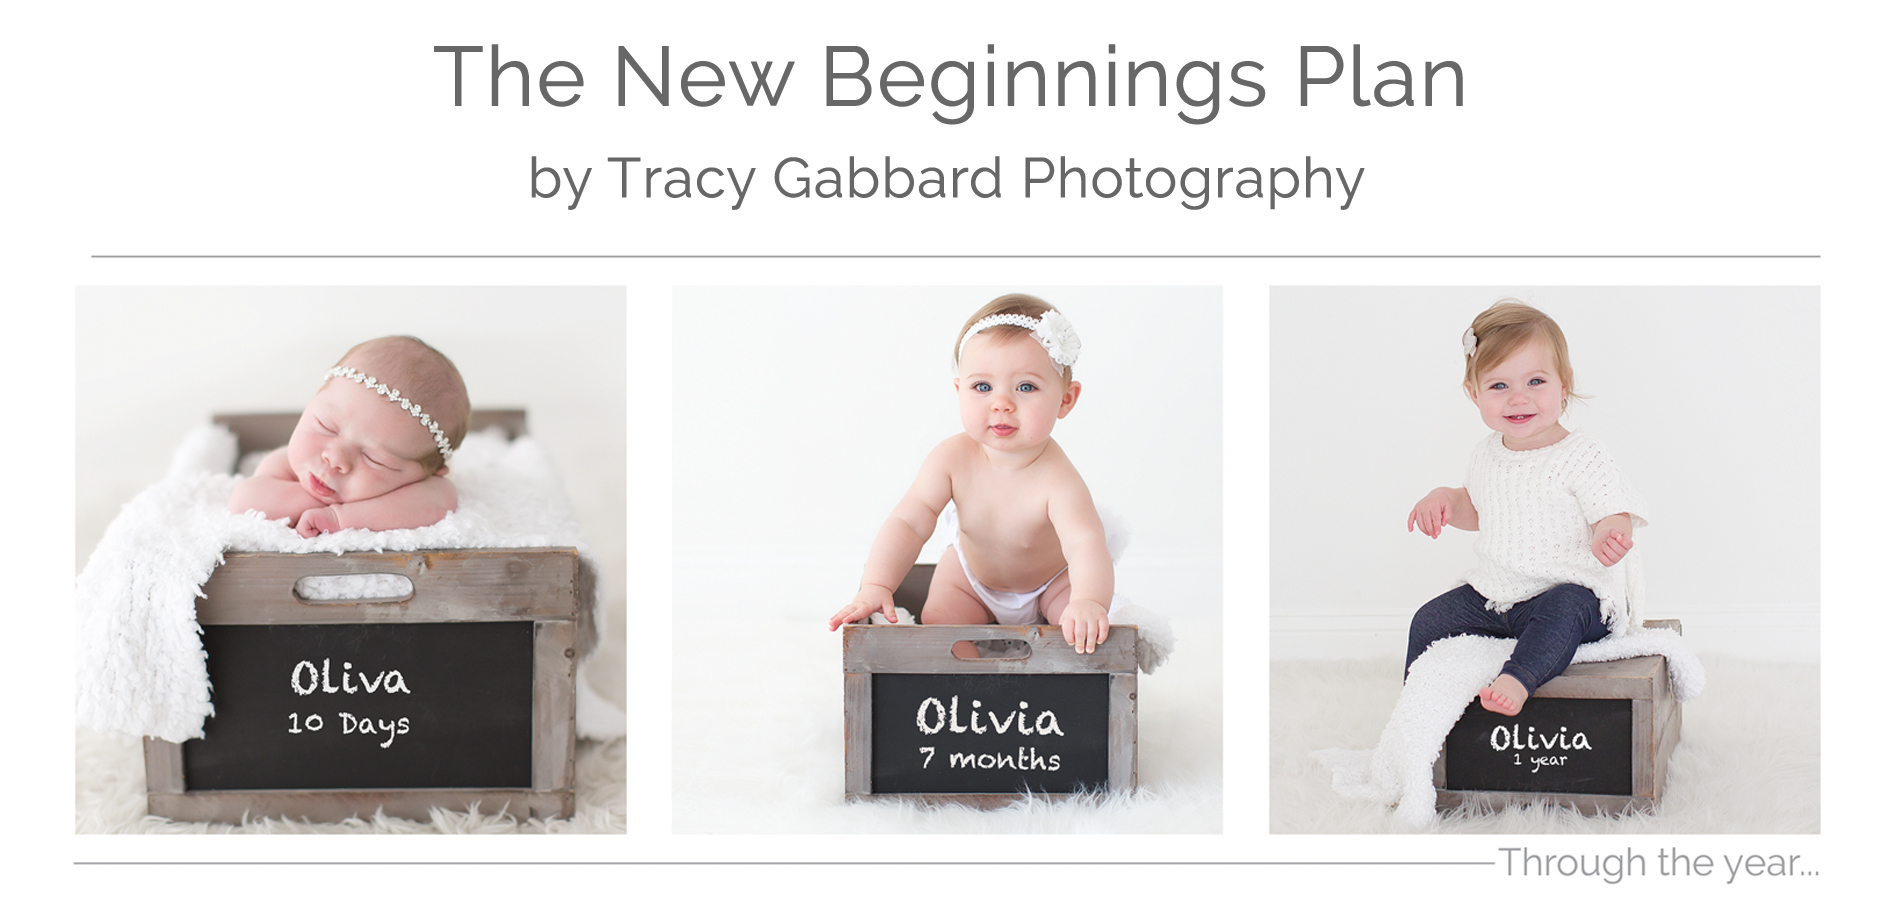 The New Beginnings Plan by Tracy Gabbard Photography